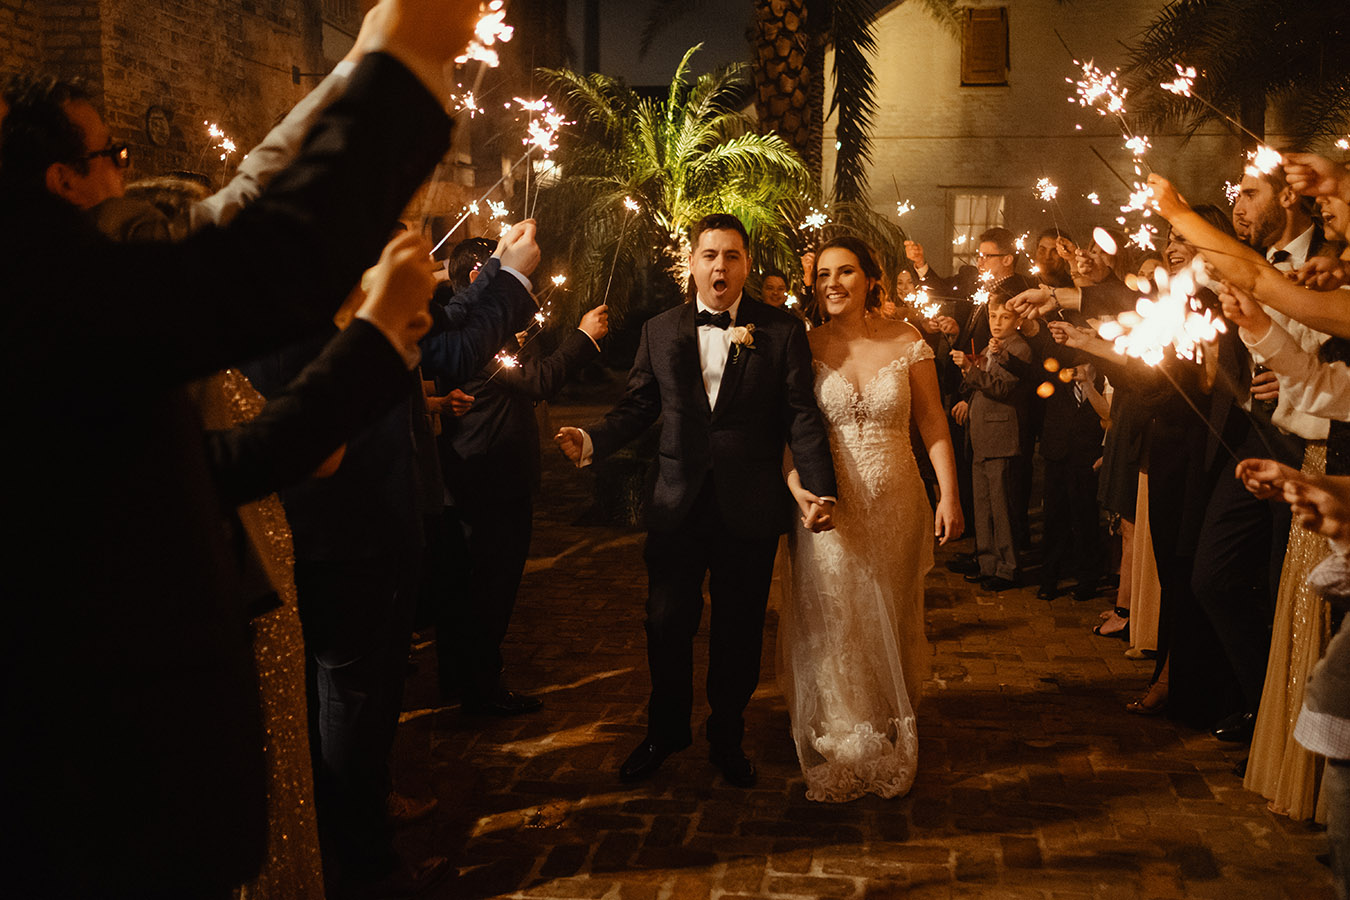 The evening ended with a sparkler send-off for the happy couple.